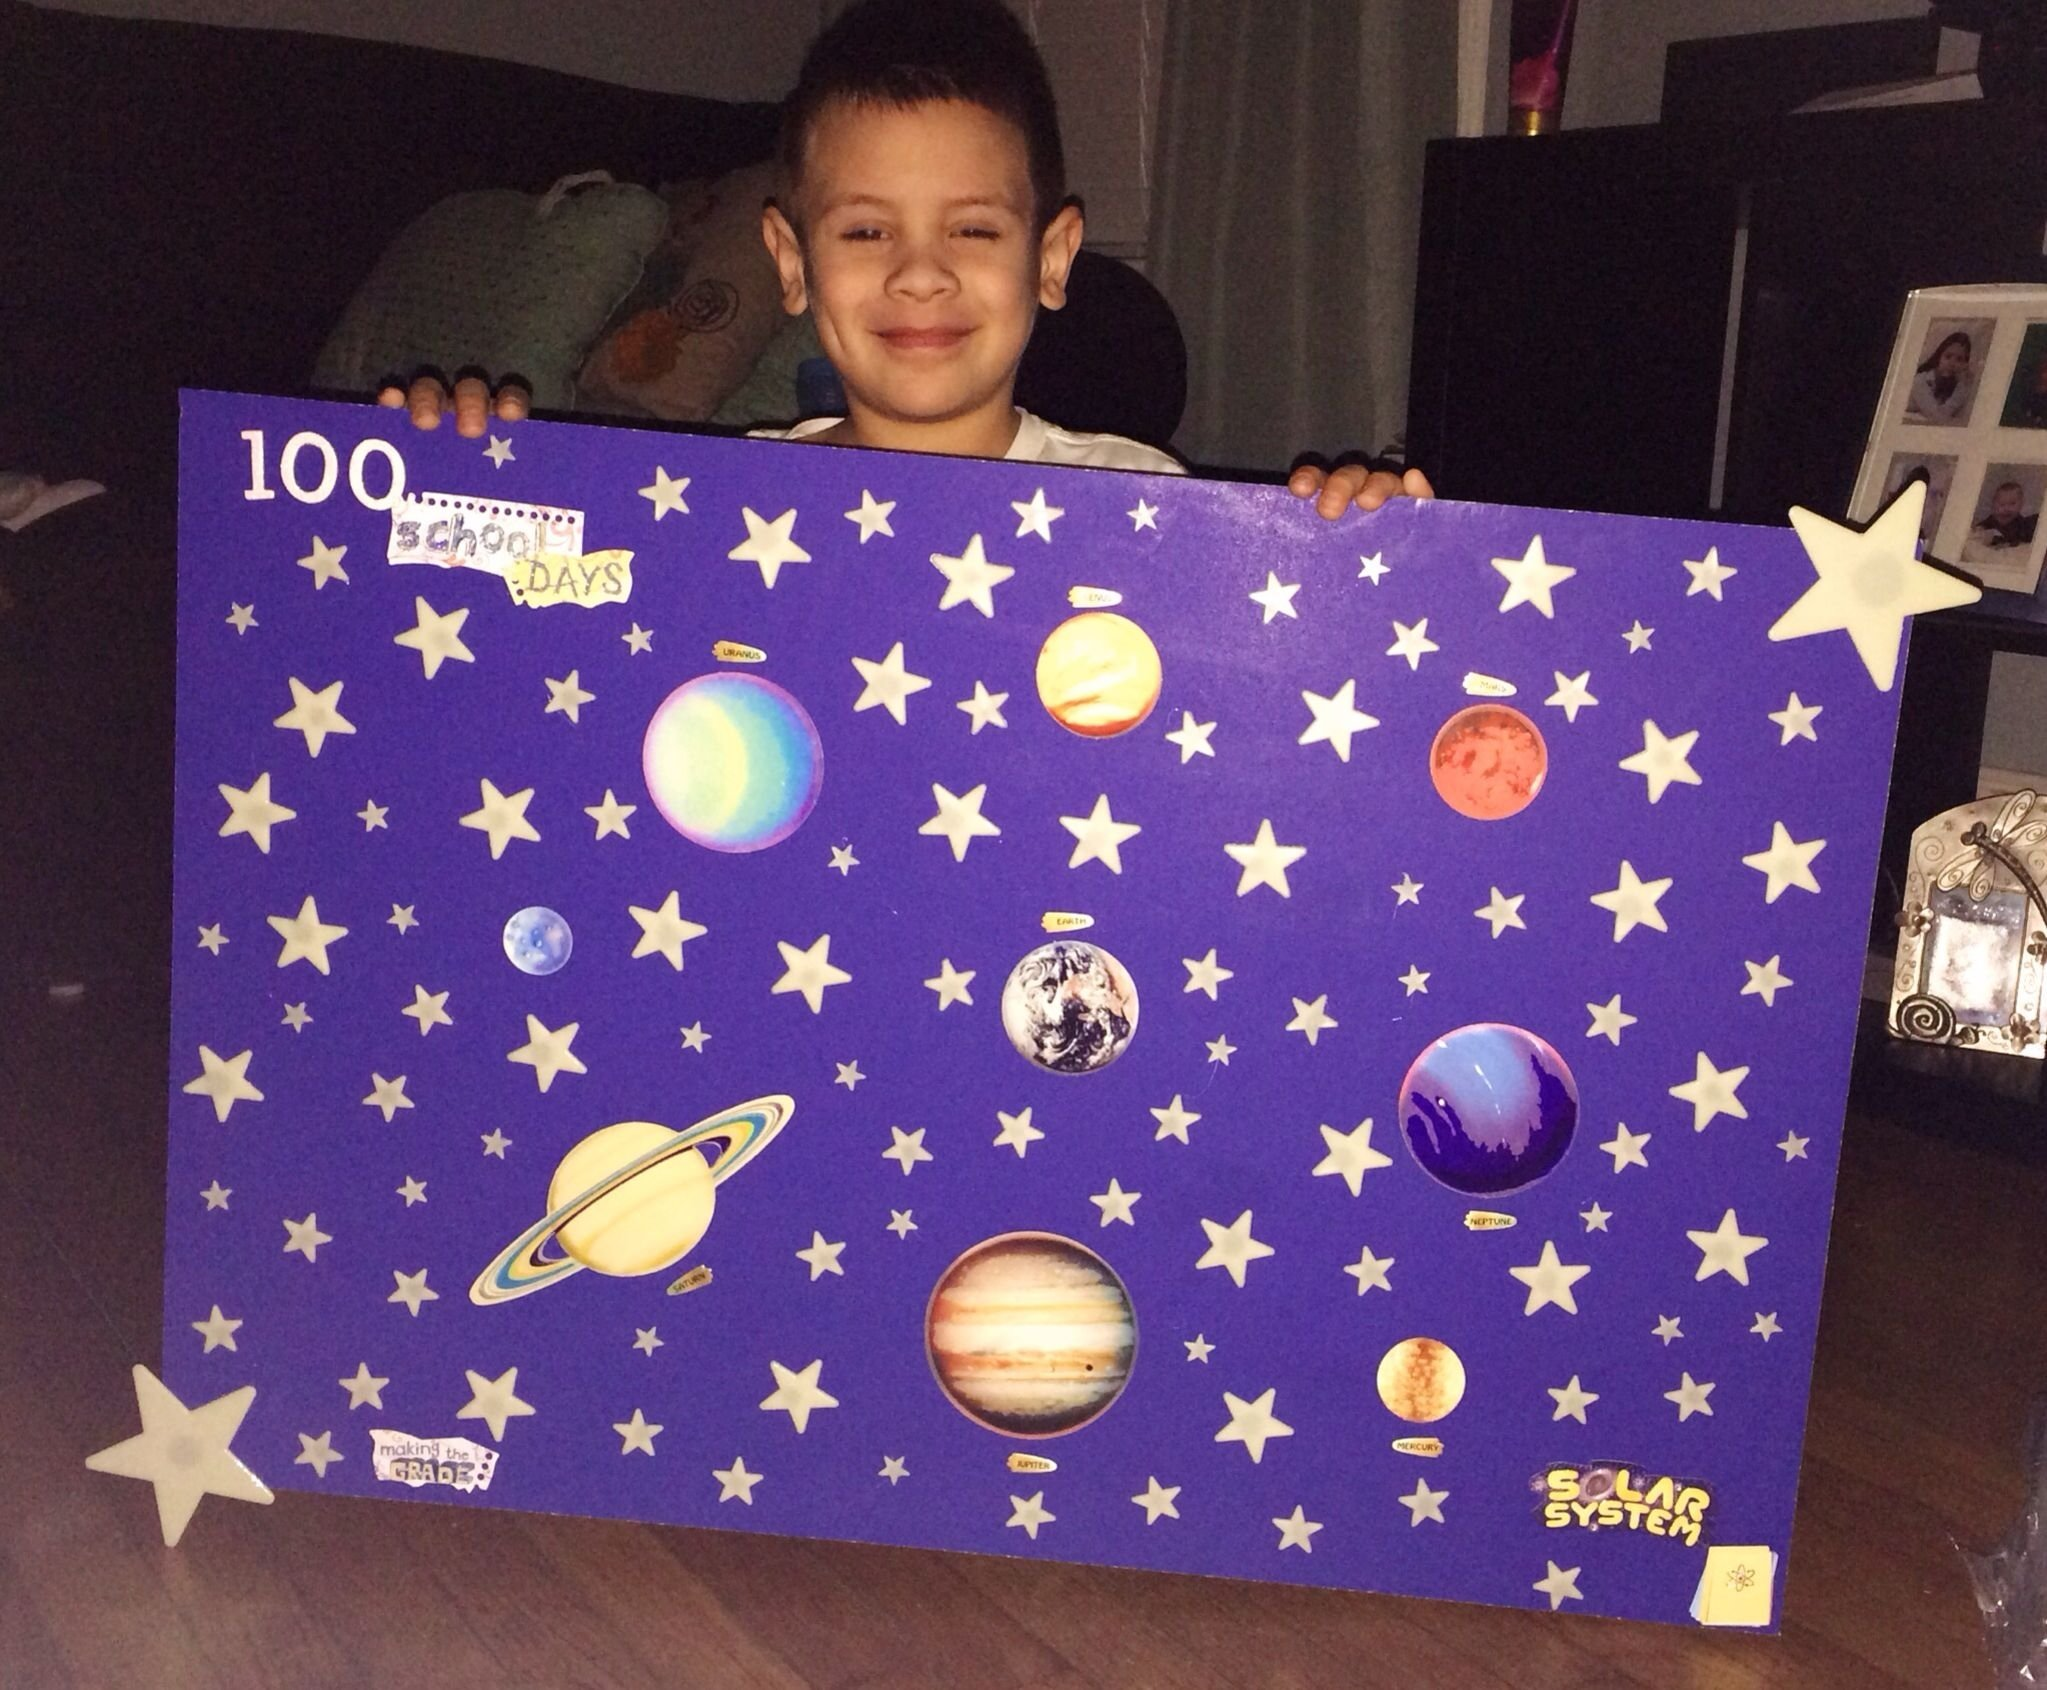 10 Perfect Ideas For 100 Days Of School Project 100 days of school project creative ideas pinterest school 2021